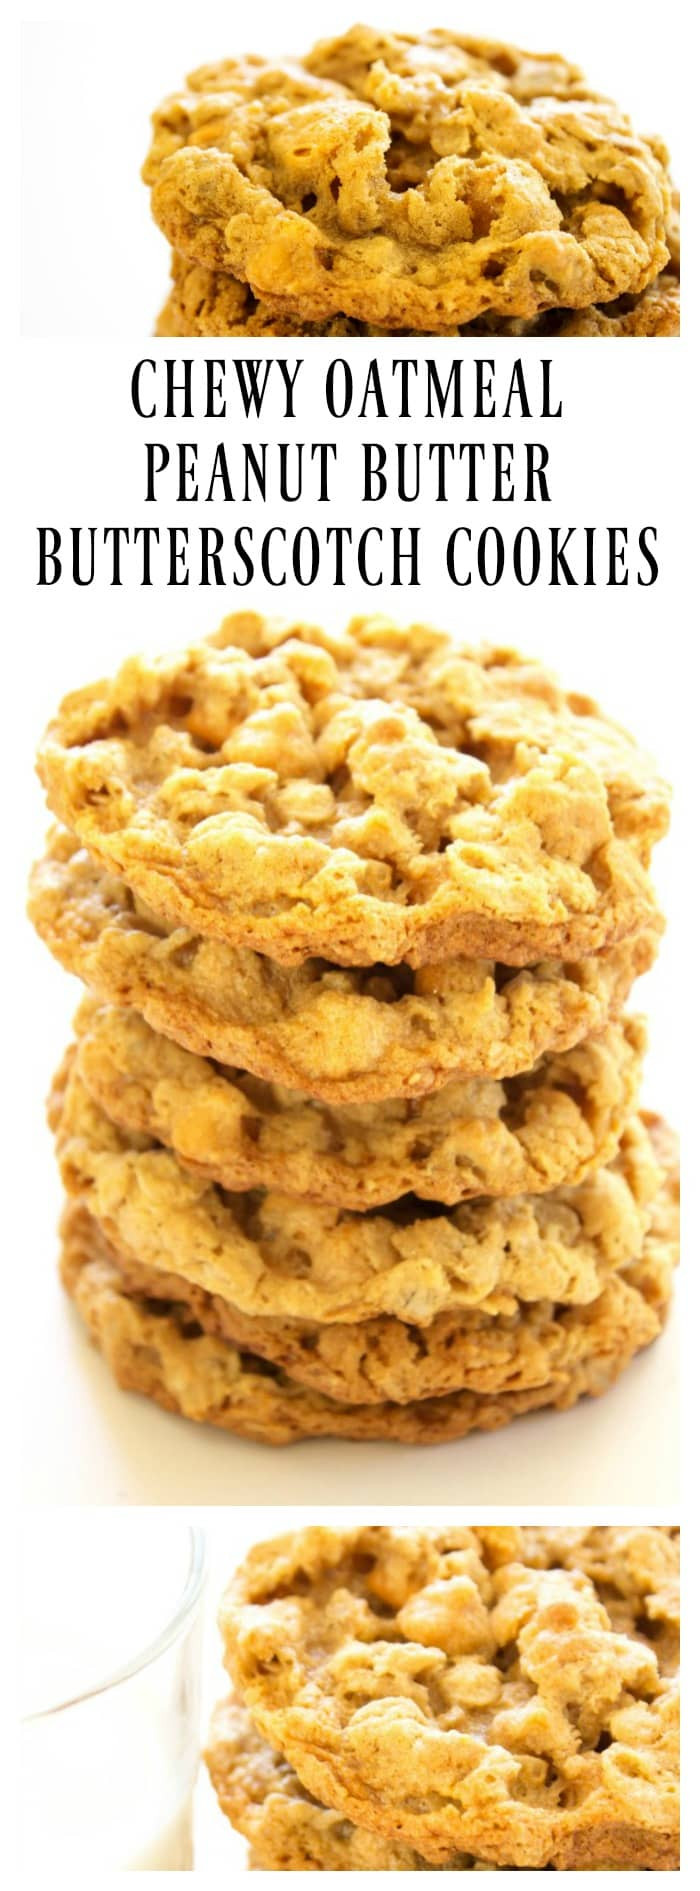 Chewy Peanut Butter Oatmeal Cookies  CHEWY OATMEAL PEANUT BUTTER BUTTERSCOTCH COOKIES A Dash